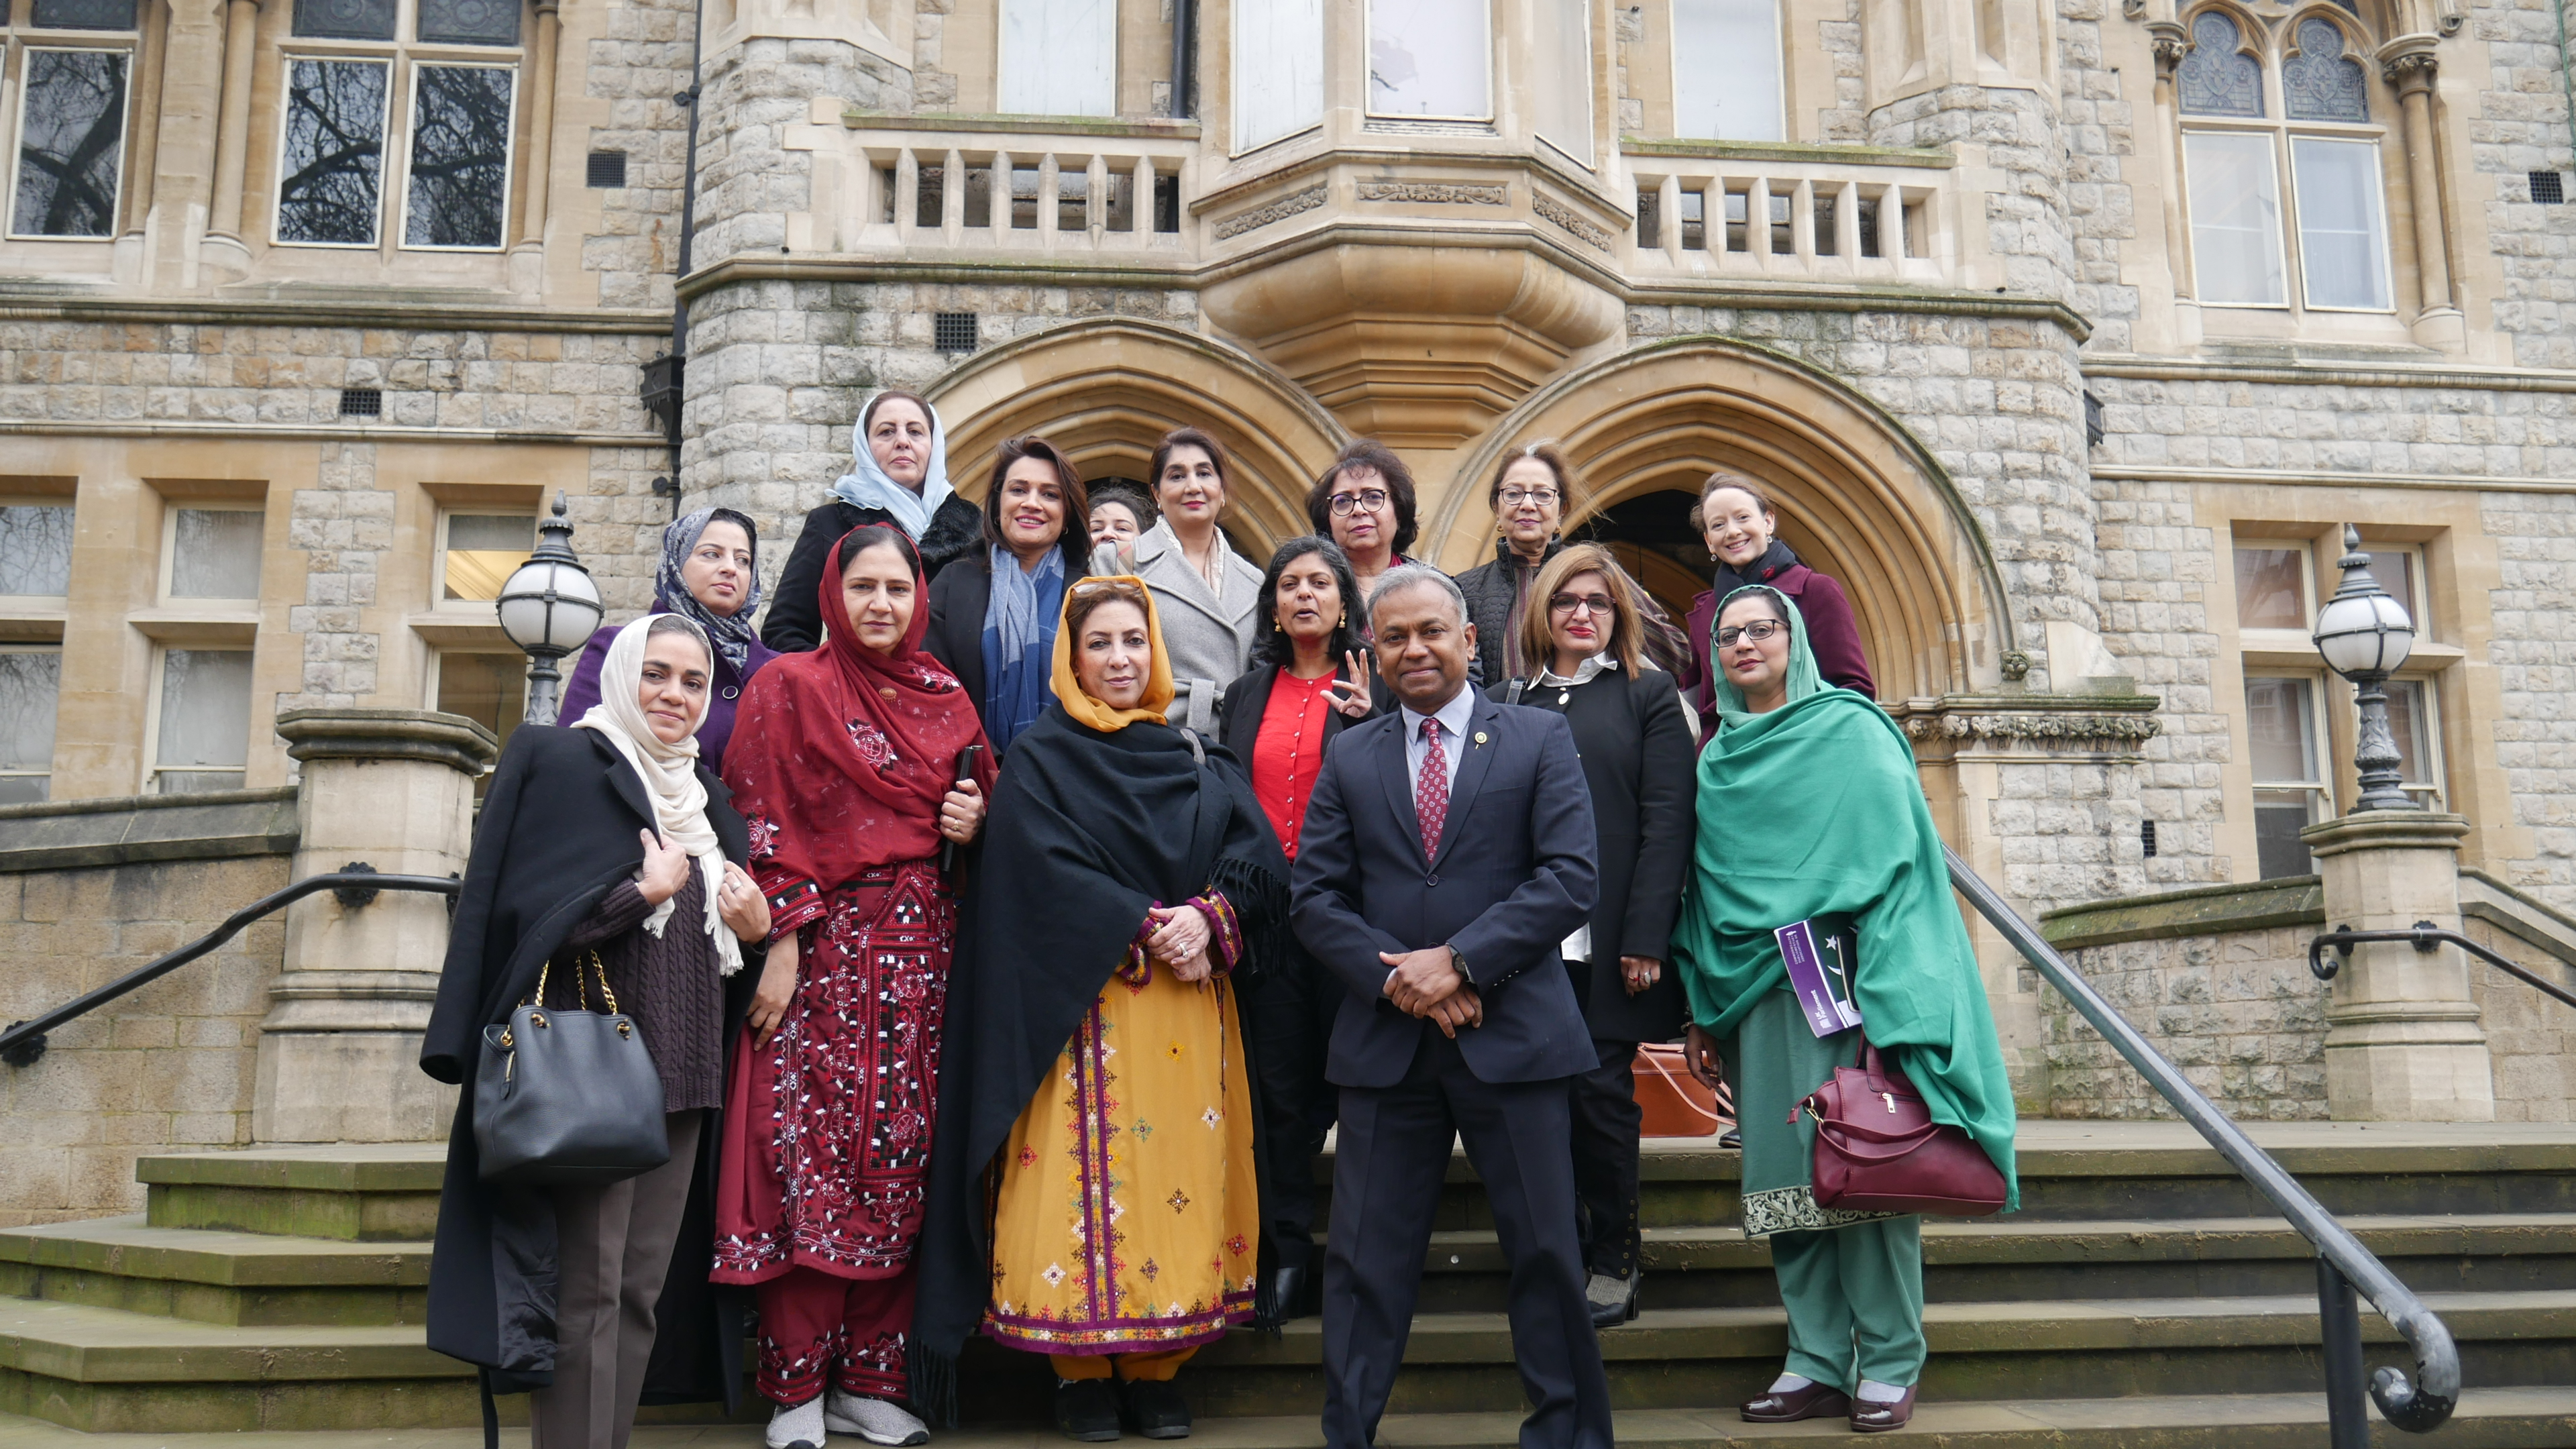 Dr Rupa Huq MP and Councillor Tariq Mahmood joined the delegation outside Ealing's historic Town Hall